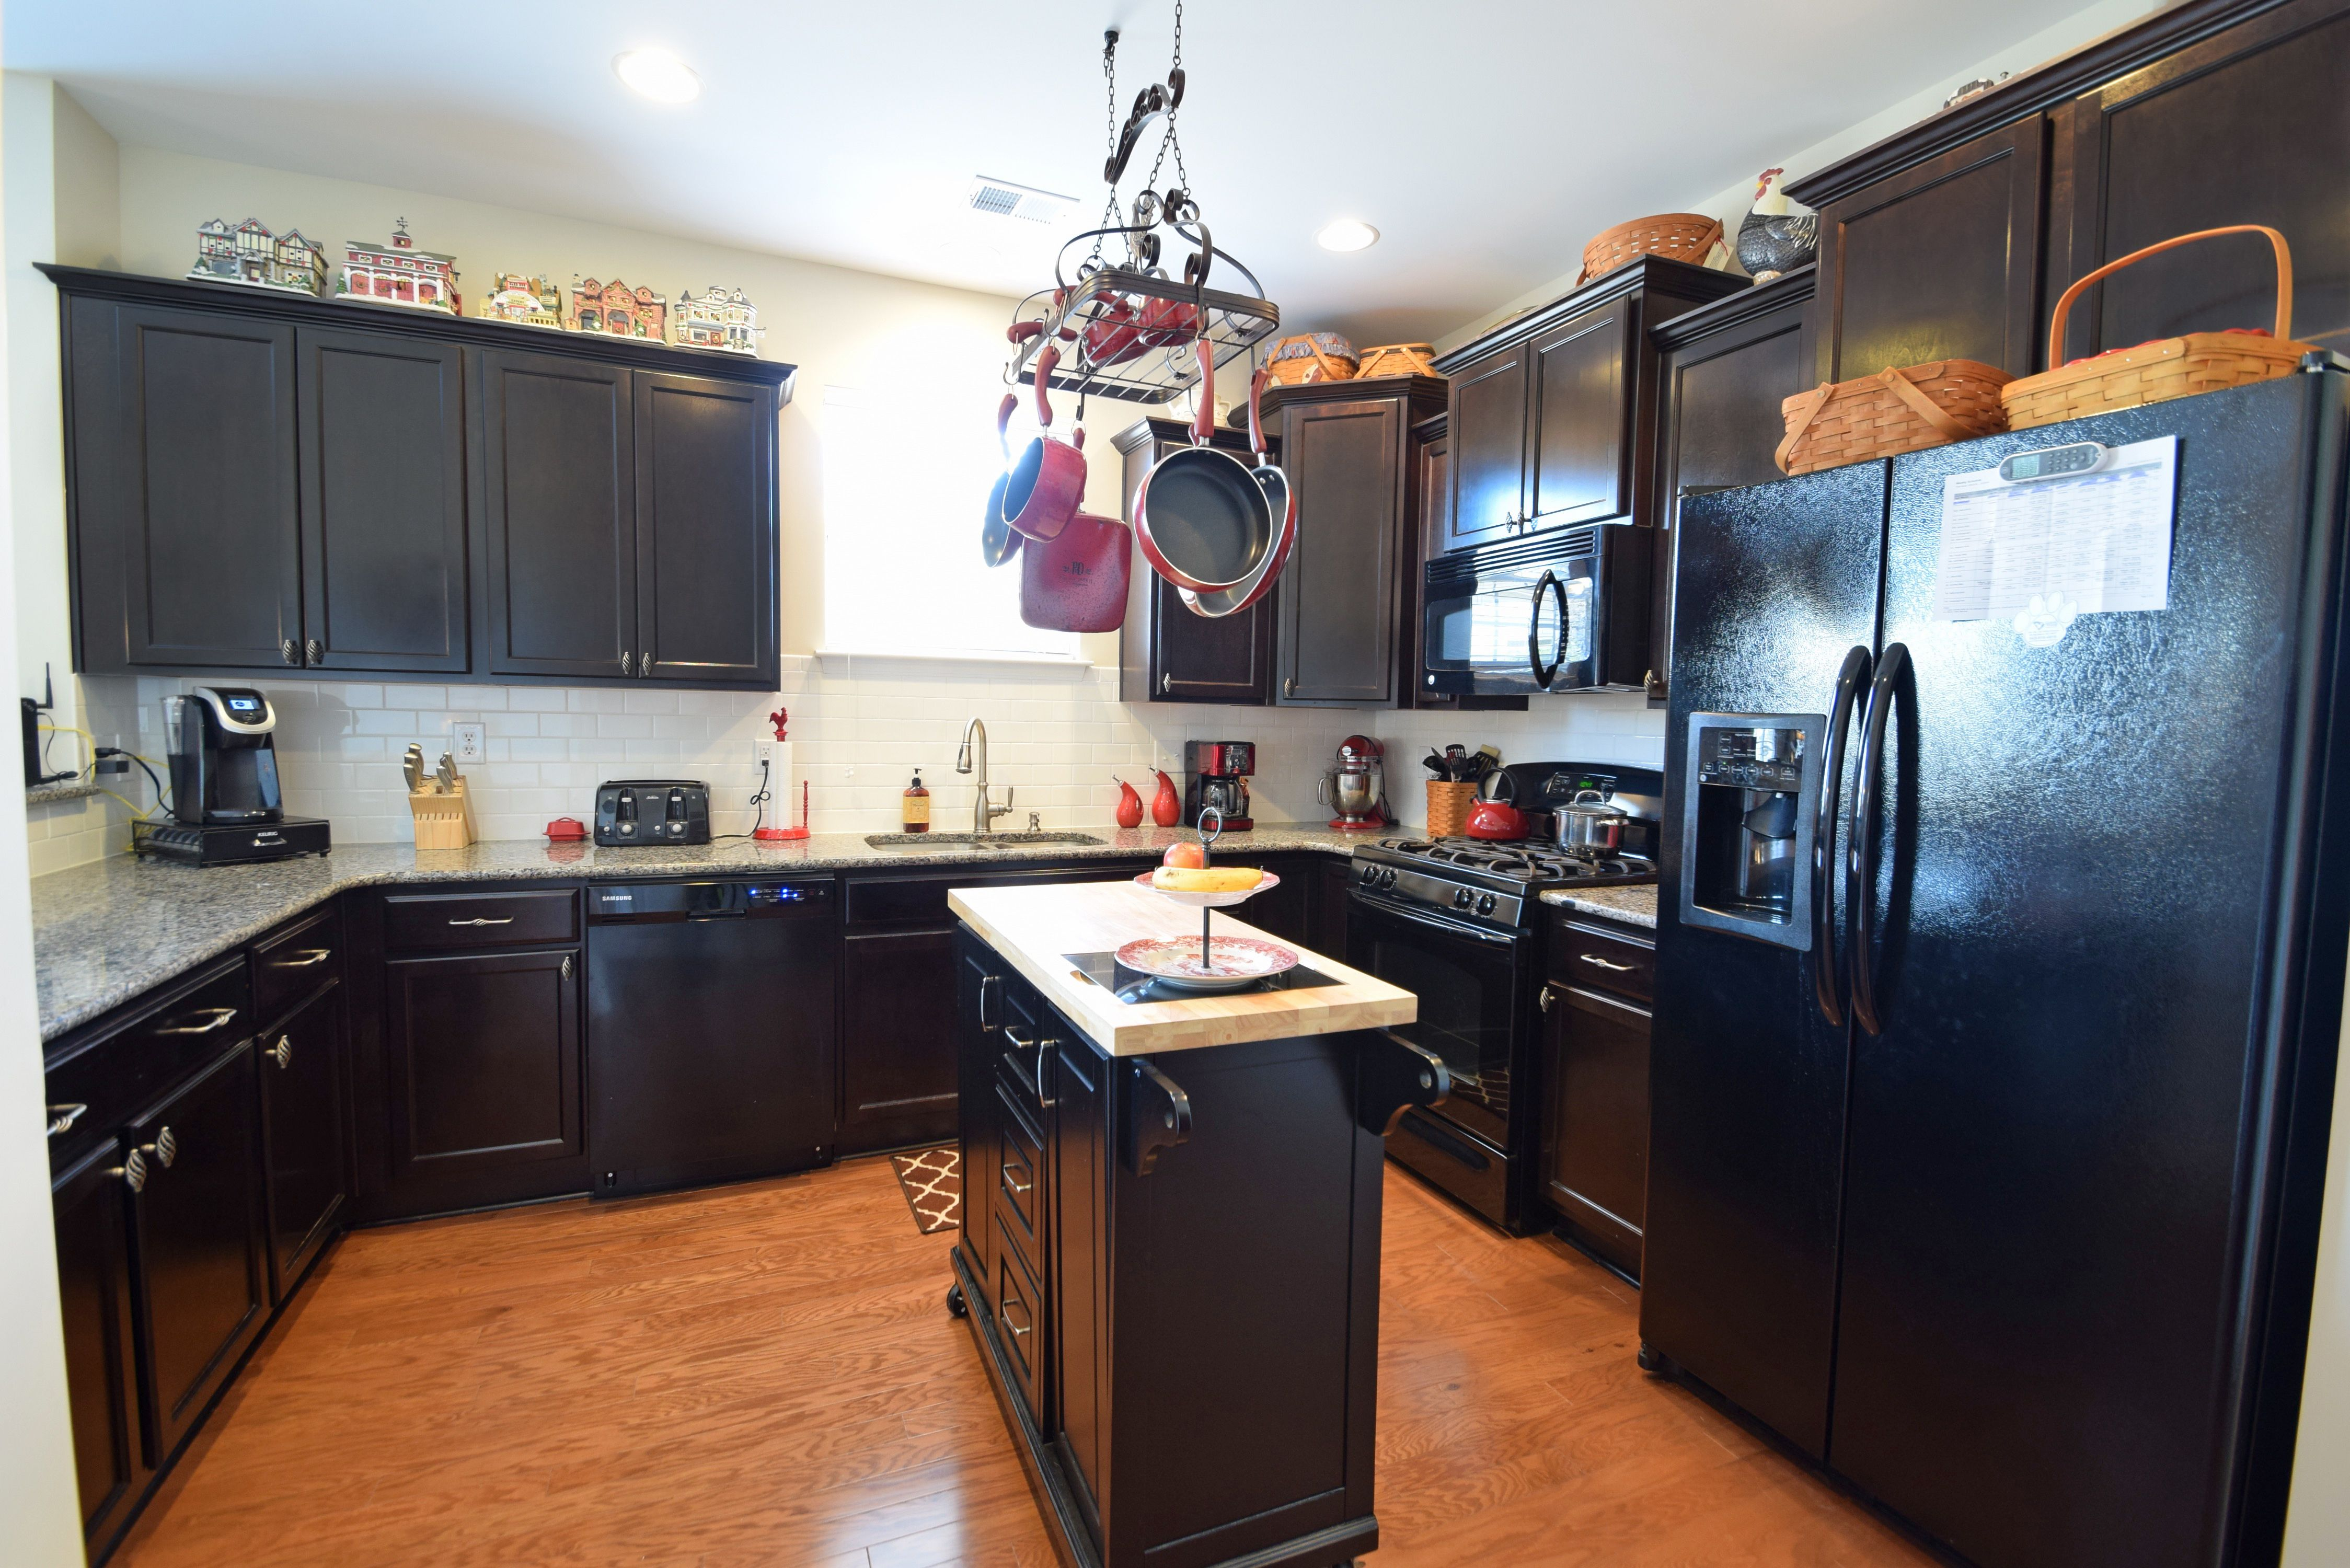 Kitchen With Granite Countertops. Myrtle Beach Homes For Sale.  #TuscanyResort Http:/